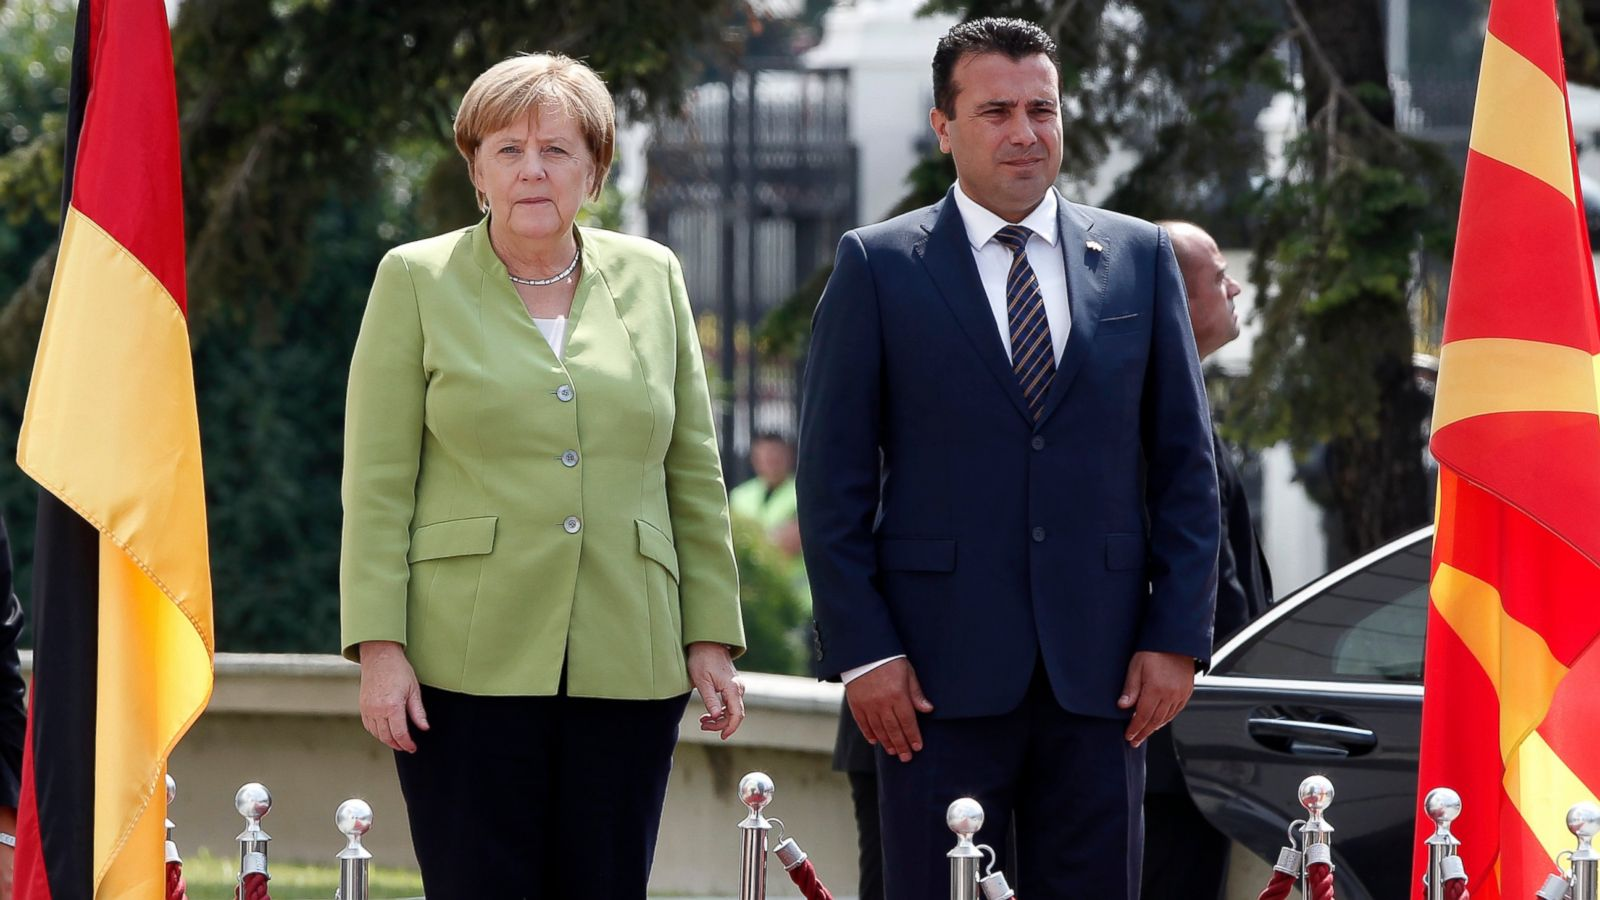 https://orientalreview.org/wp-content/uploads/2018/09/Merkel-Is-Meddling-In-Macedonia%E2%80%99s-Referendum.jpg